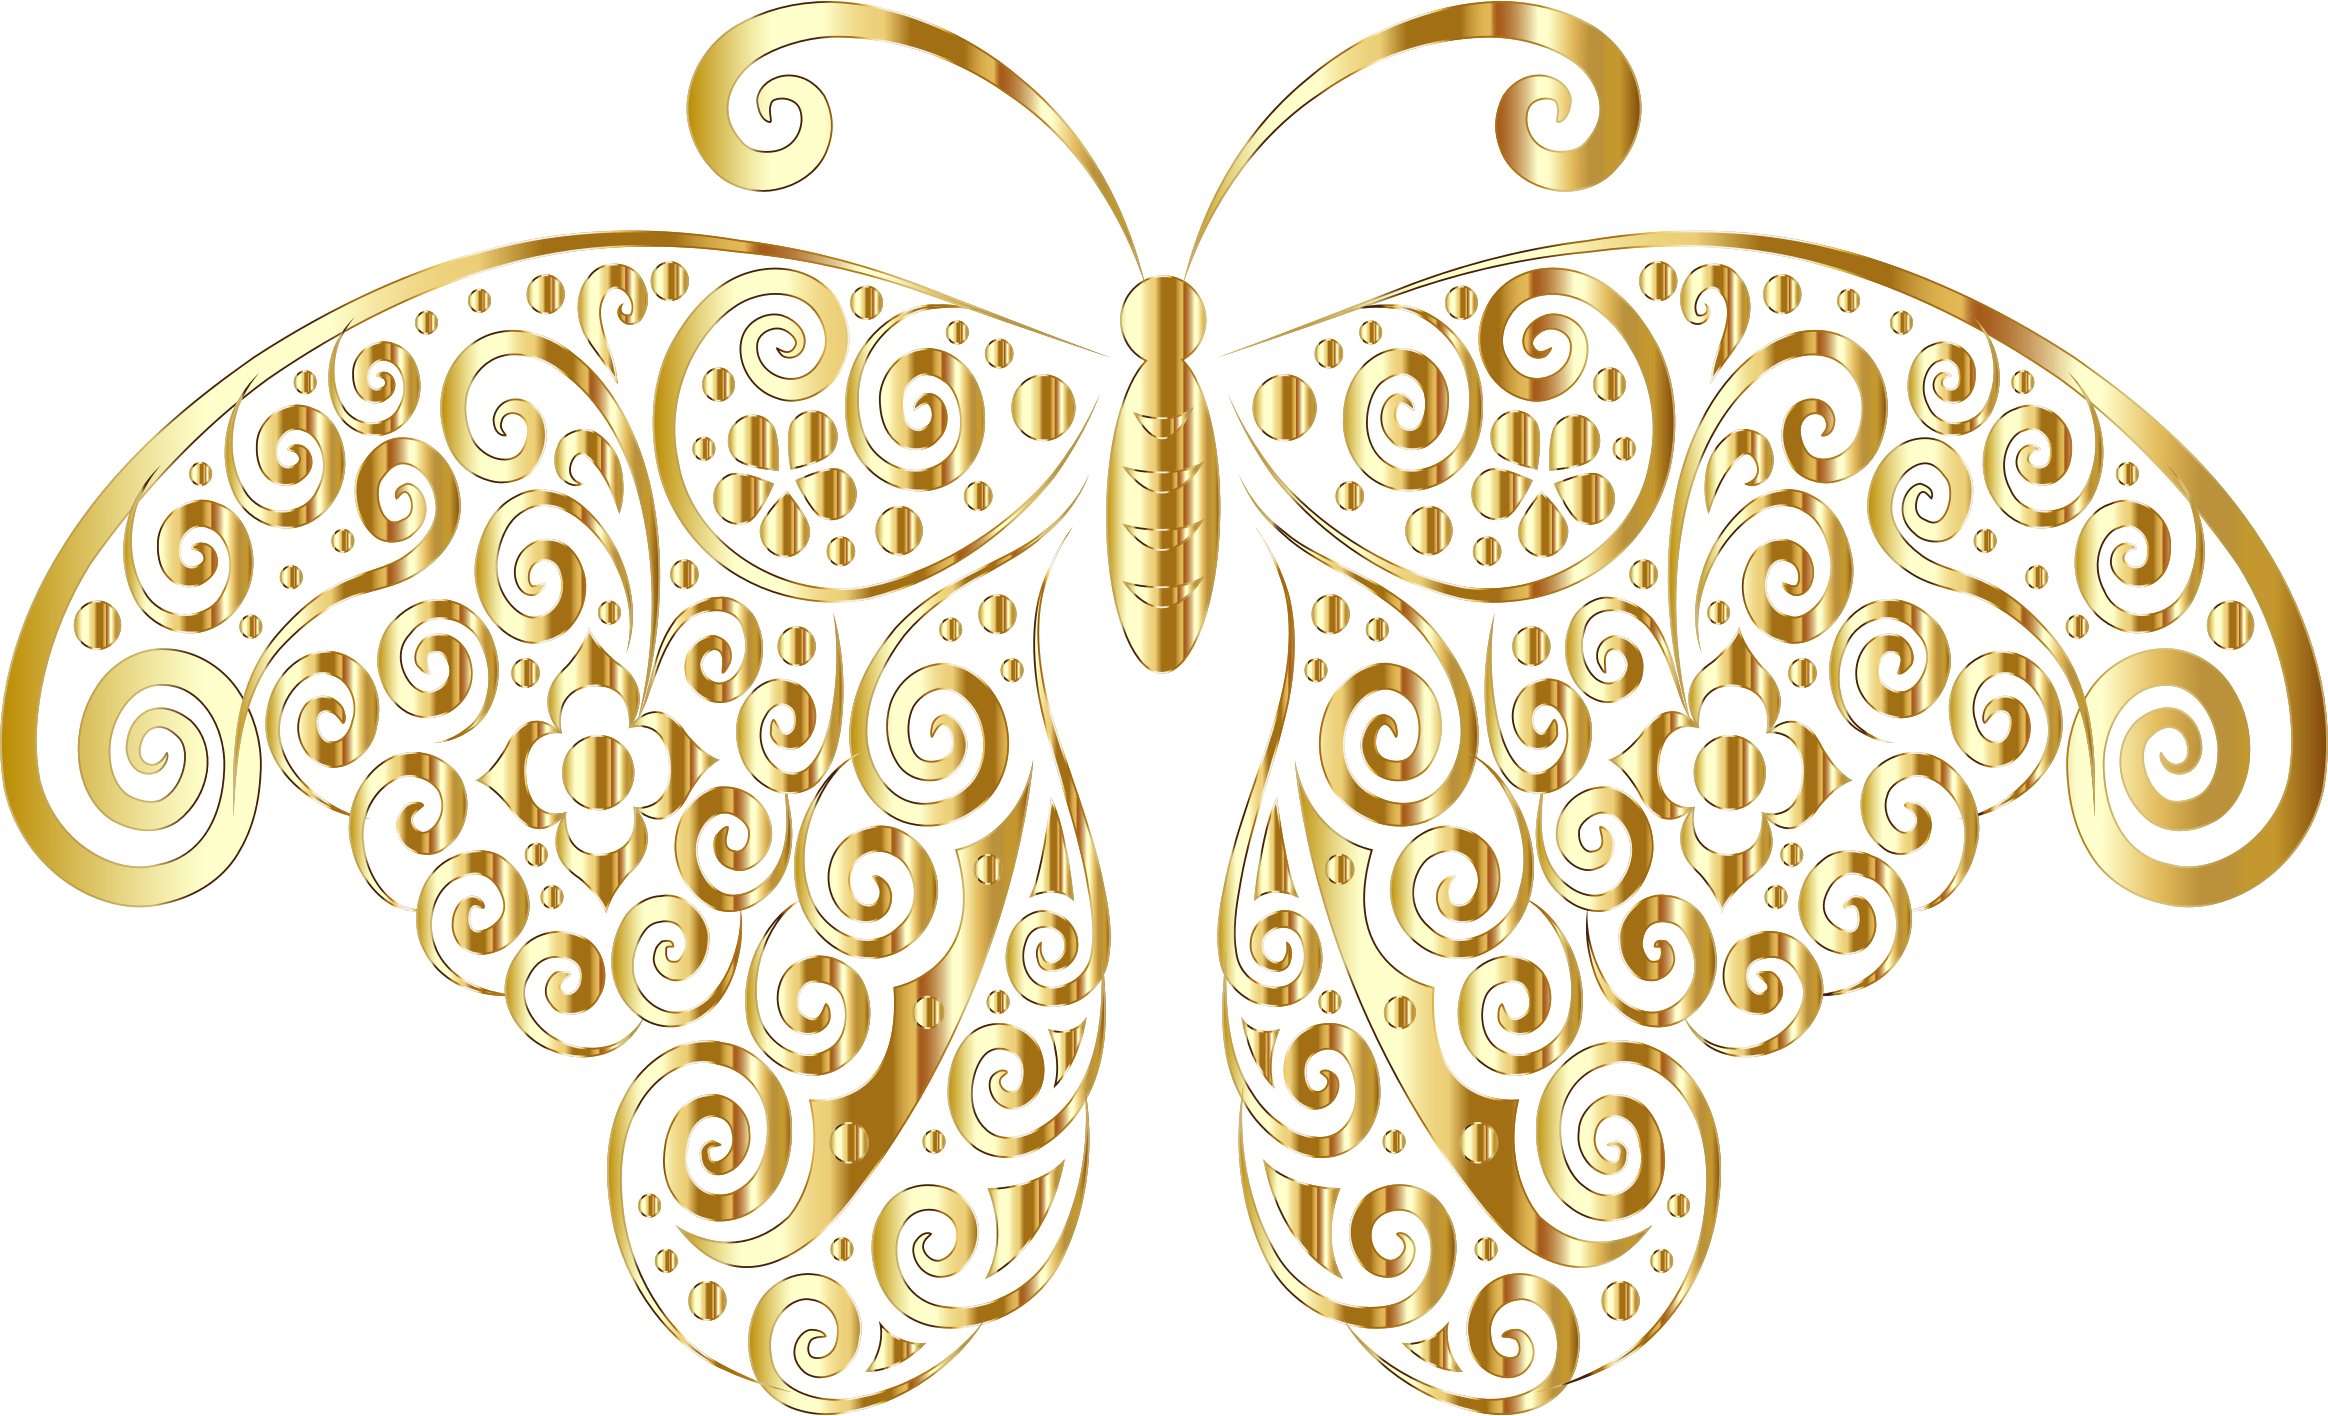 Gold flourish png. Floral butterfly silhouette no